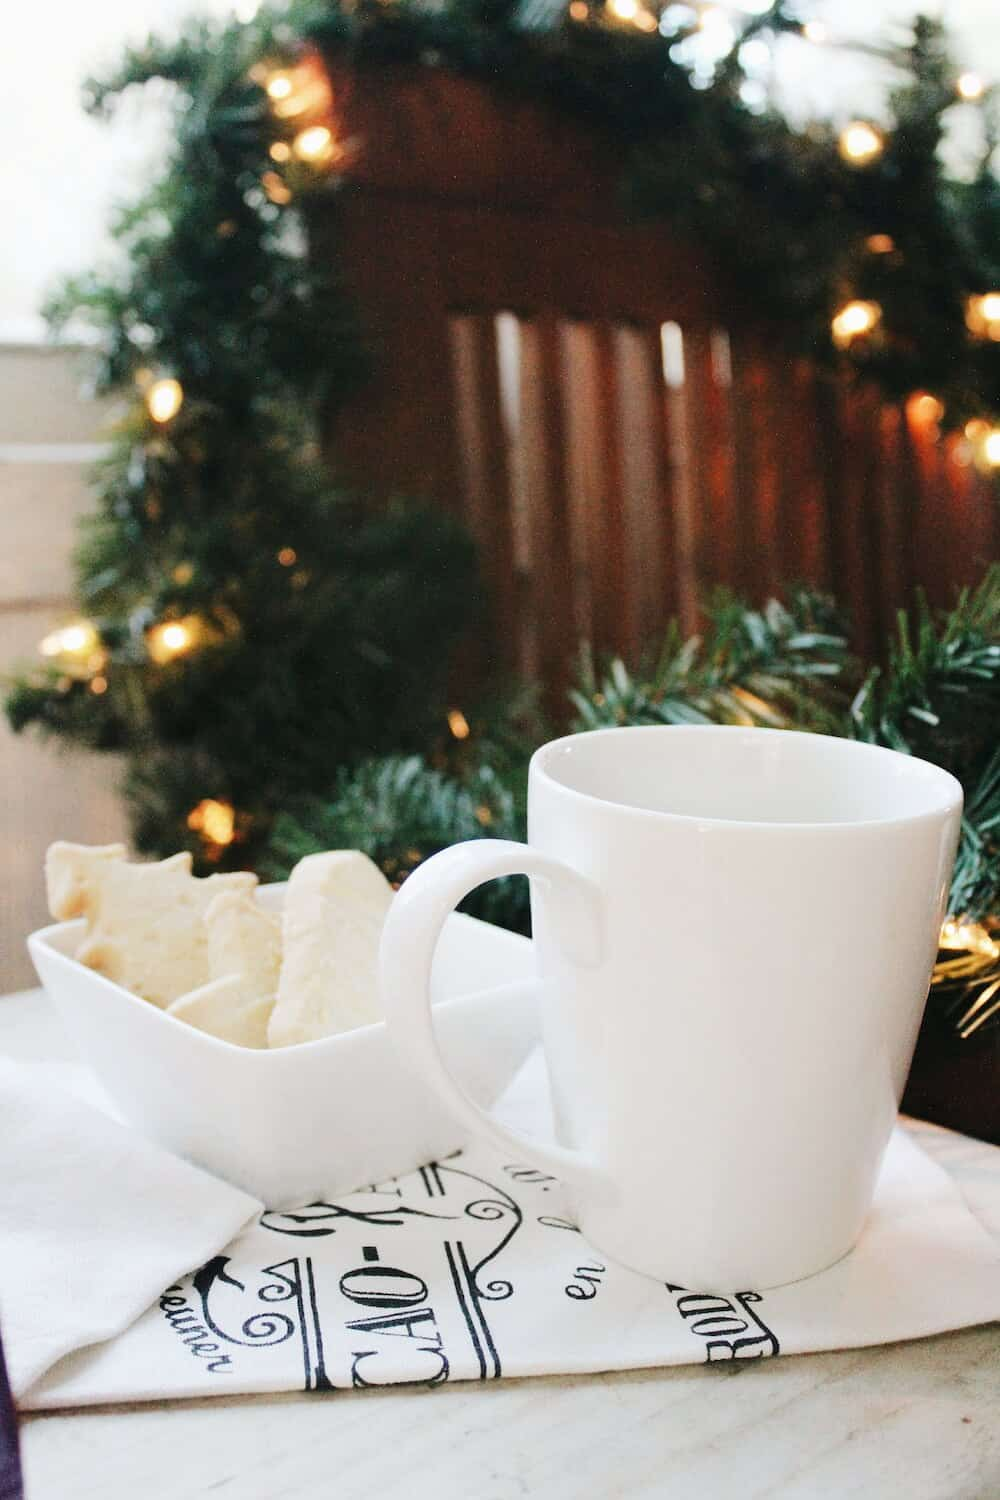 Cookies and mug in front of Christmas decorations.